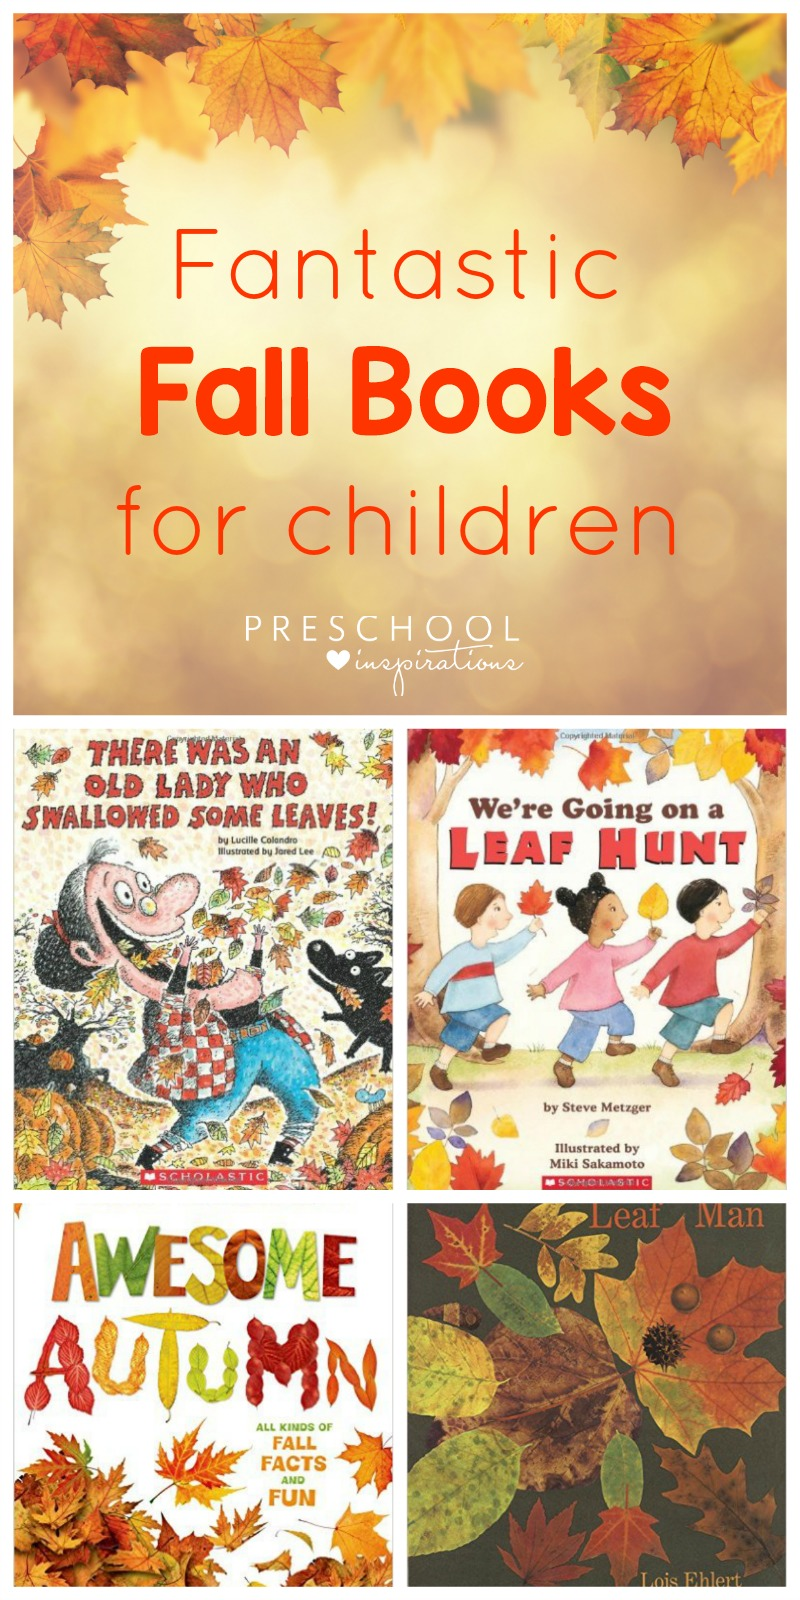 Fantastic Fall Books for Children #toddler #prek #preschool #booksforkids #circletimebooks #readaloud #picturebooks #fallbooks